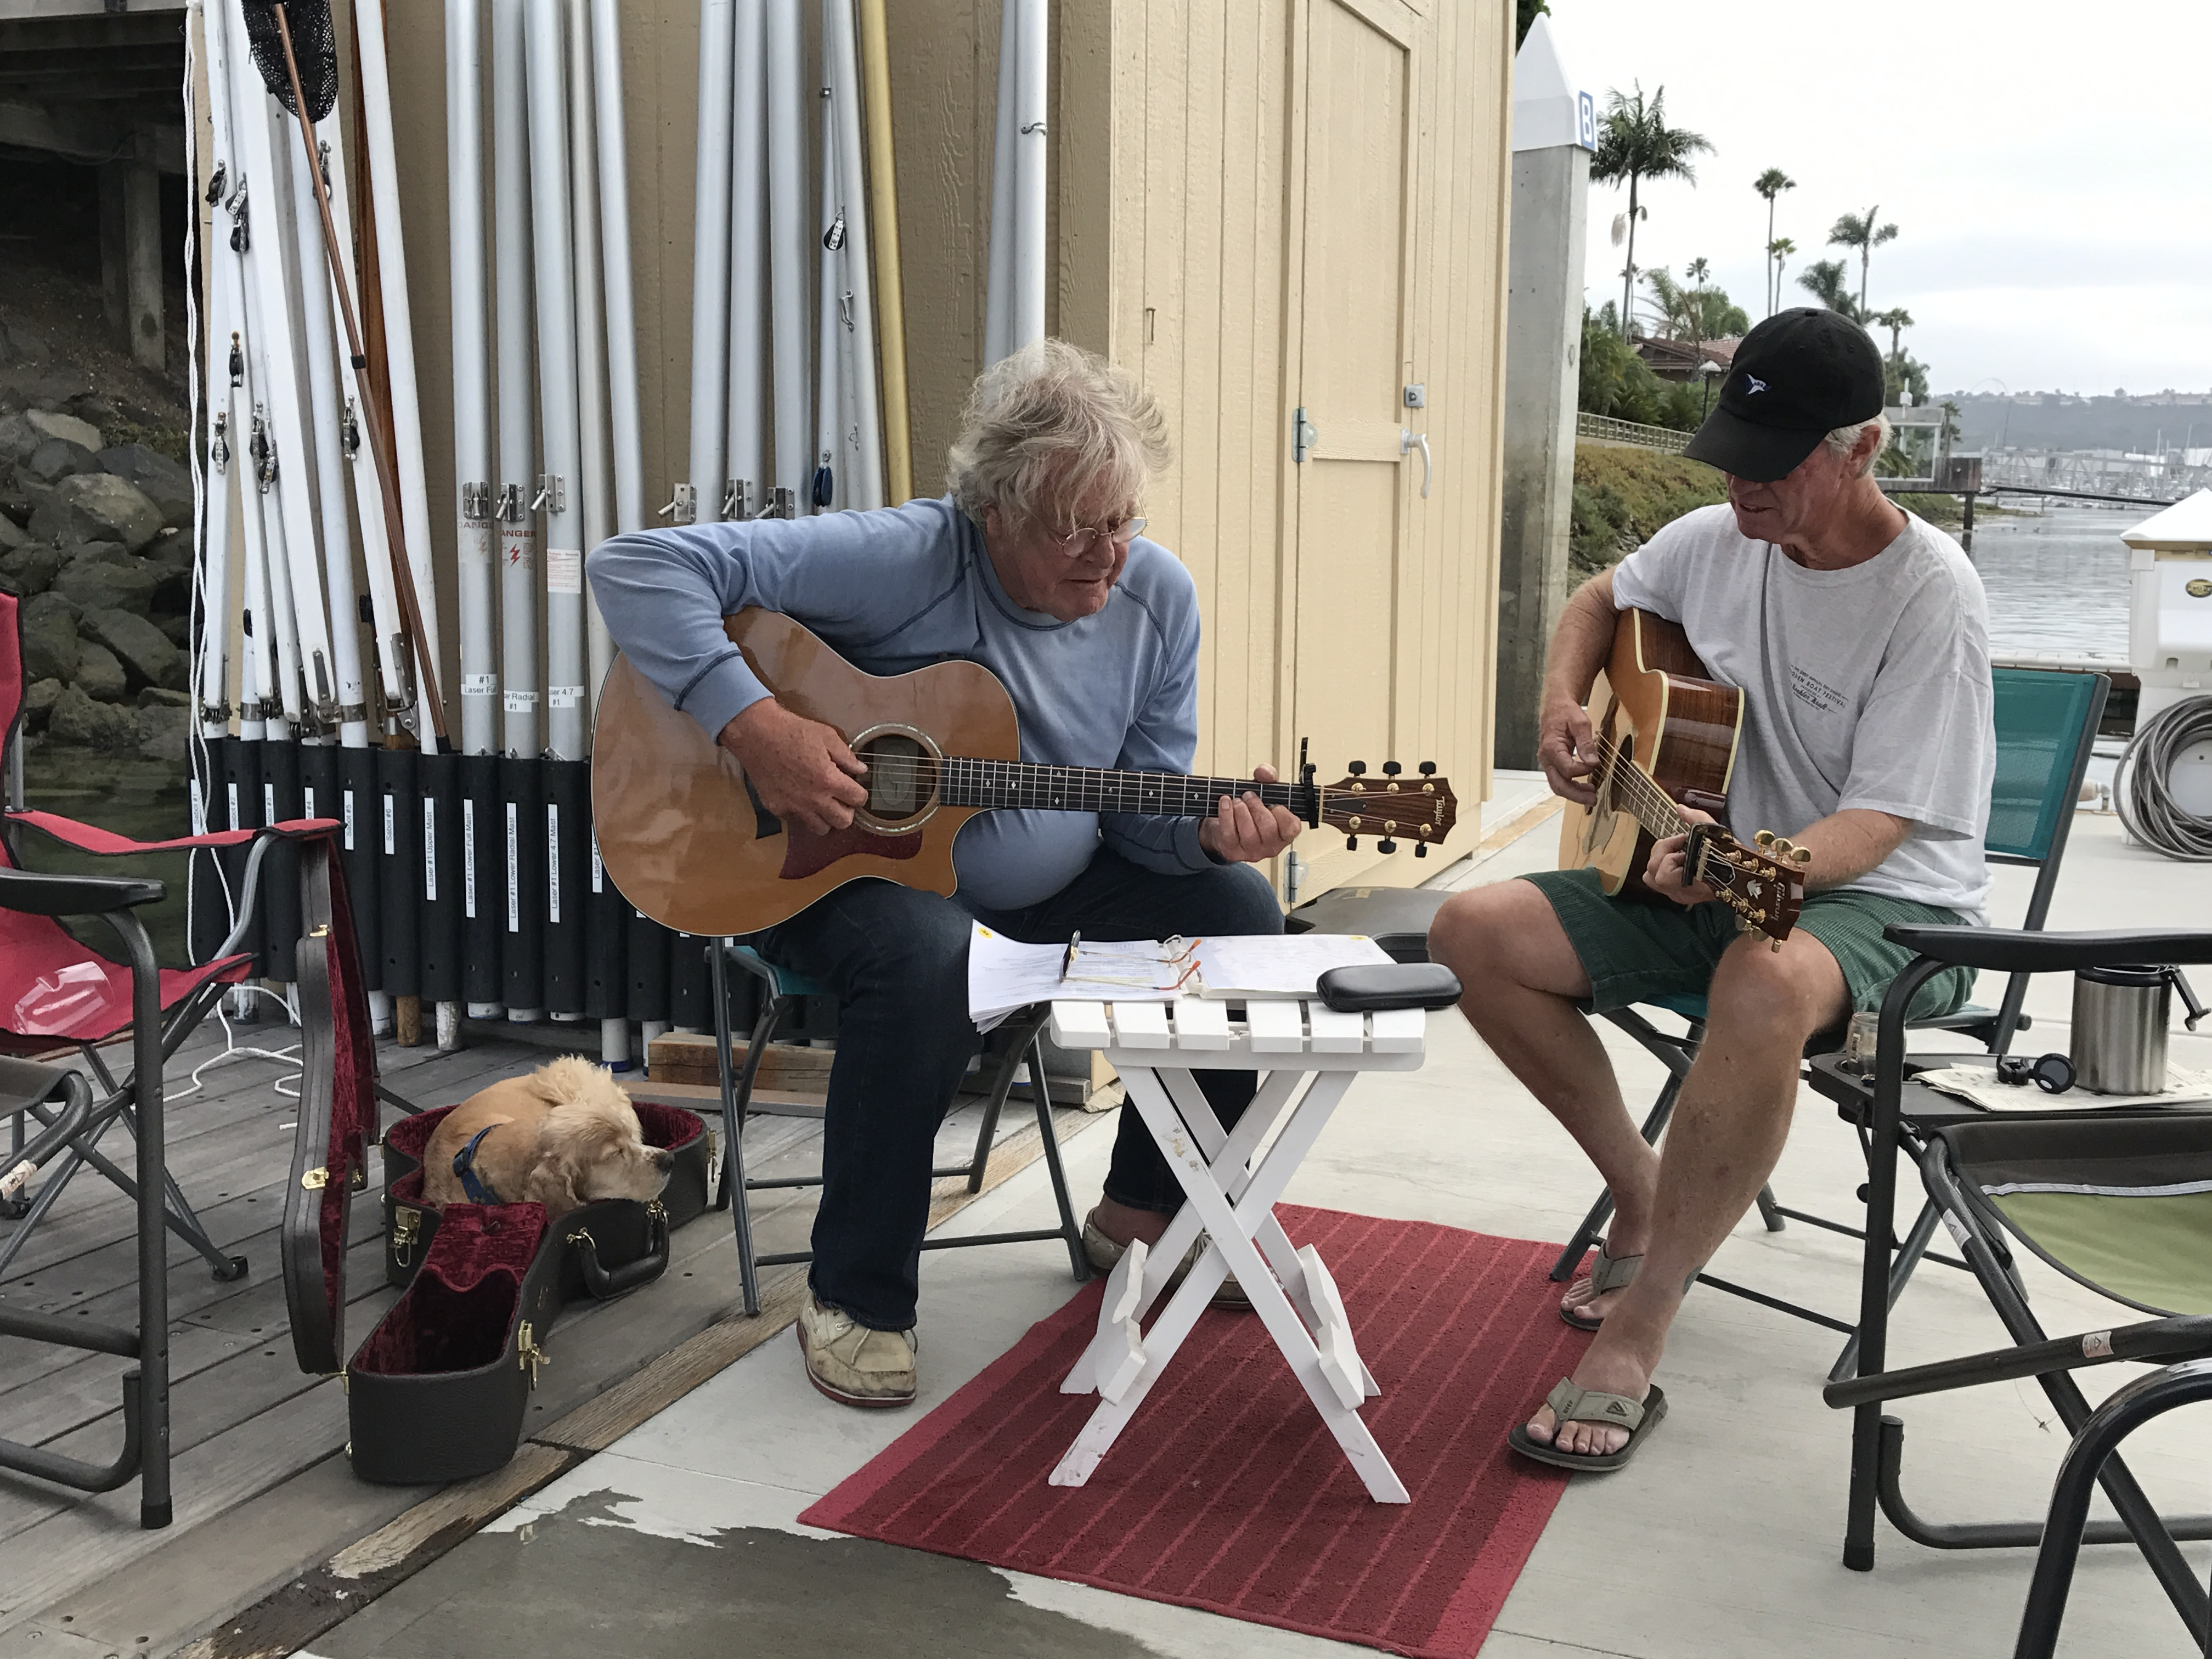 Even the puppy likes when the guitar is out of the case!